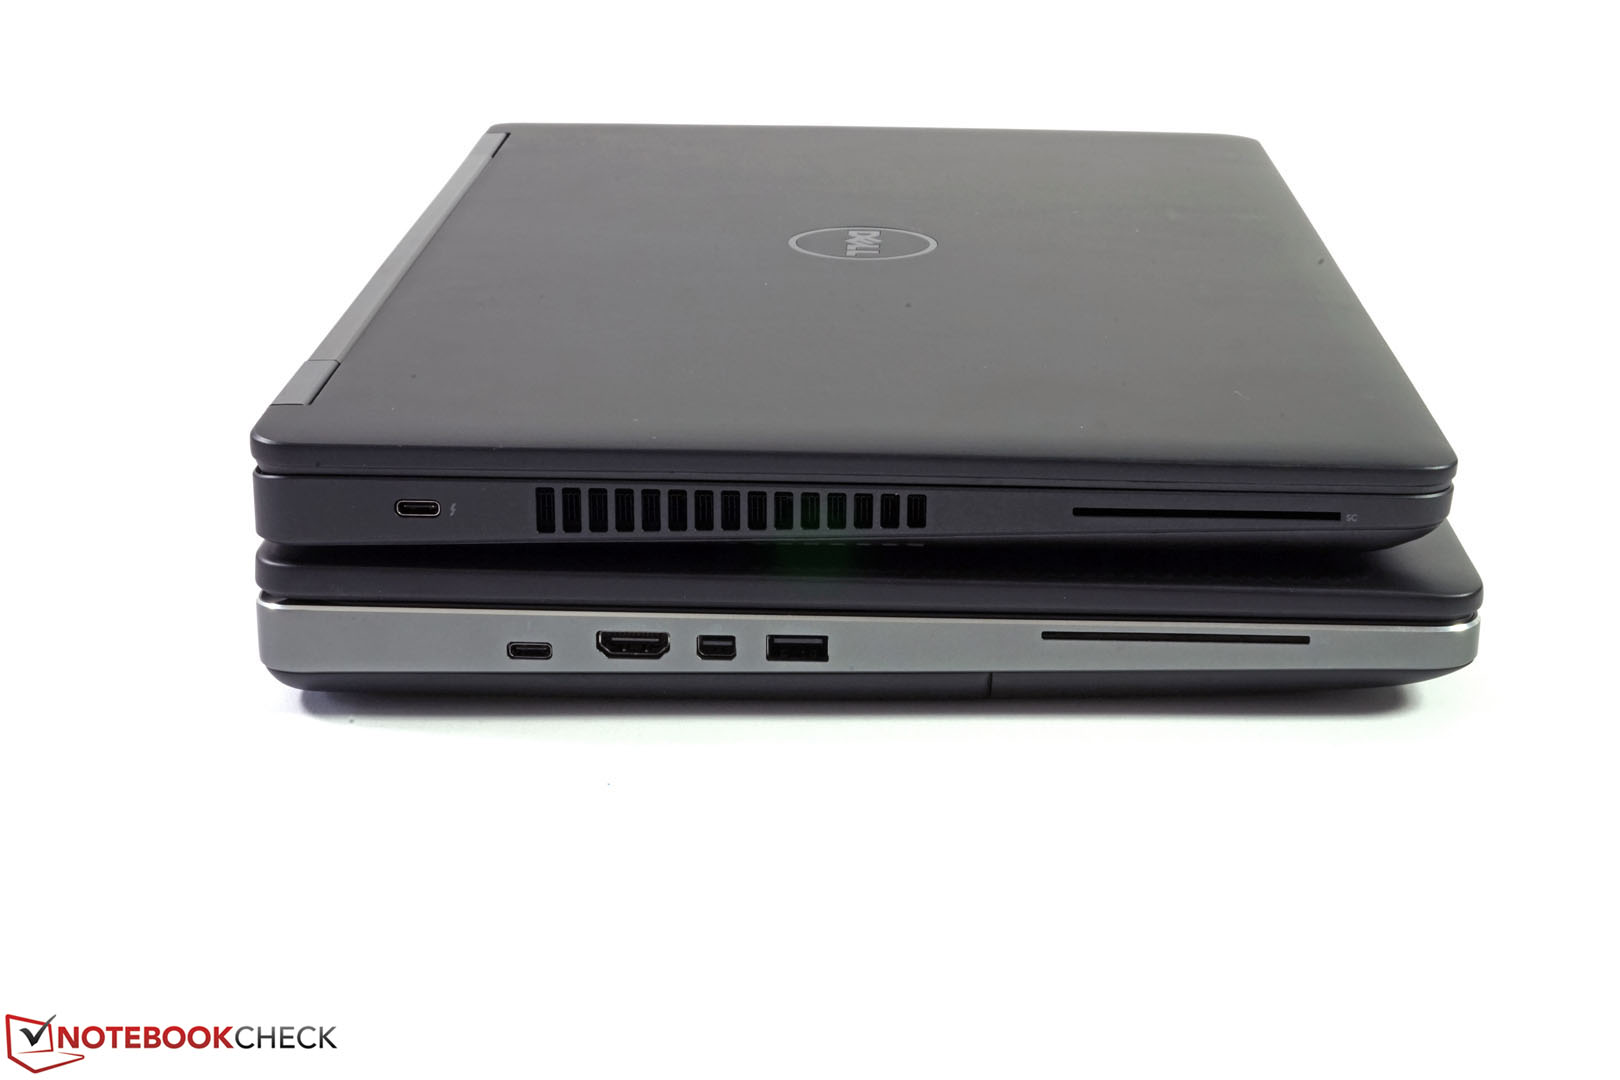 Dell Precision 3510 Docking Station - Best Pictures Of Dell